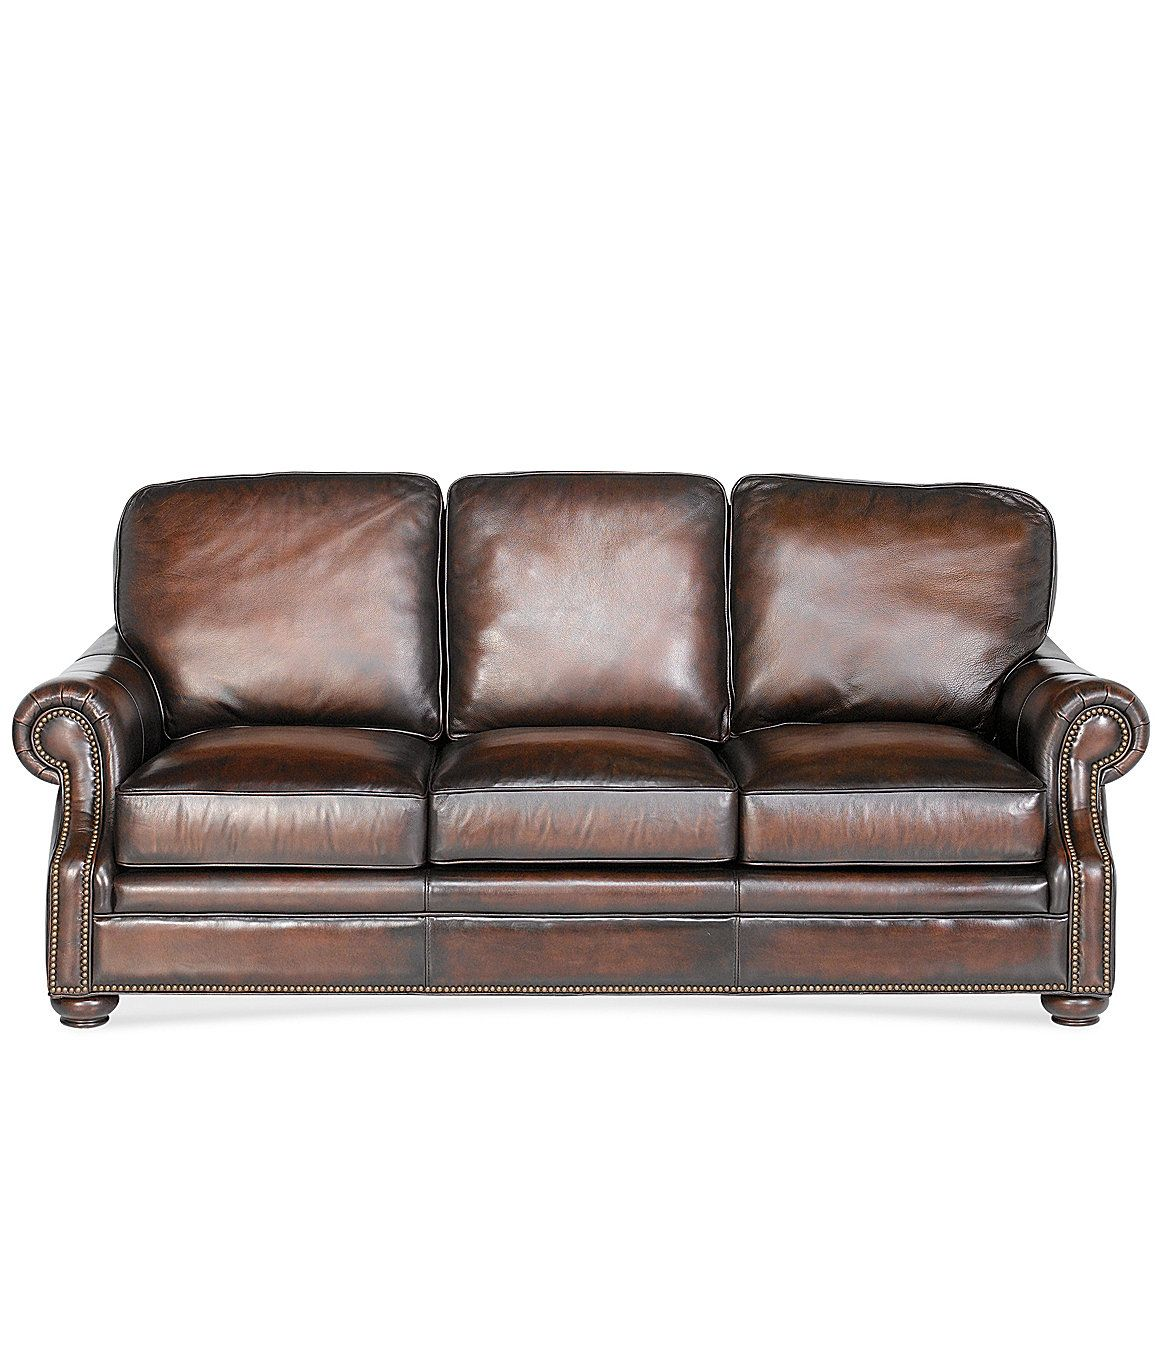 "Dillards Sofas: Bradington Young ""Chateau"" Leather Sofa"